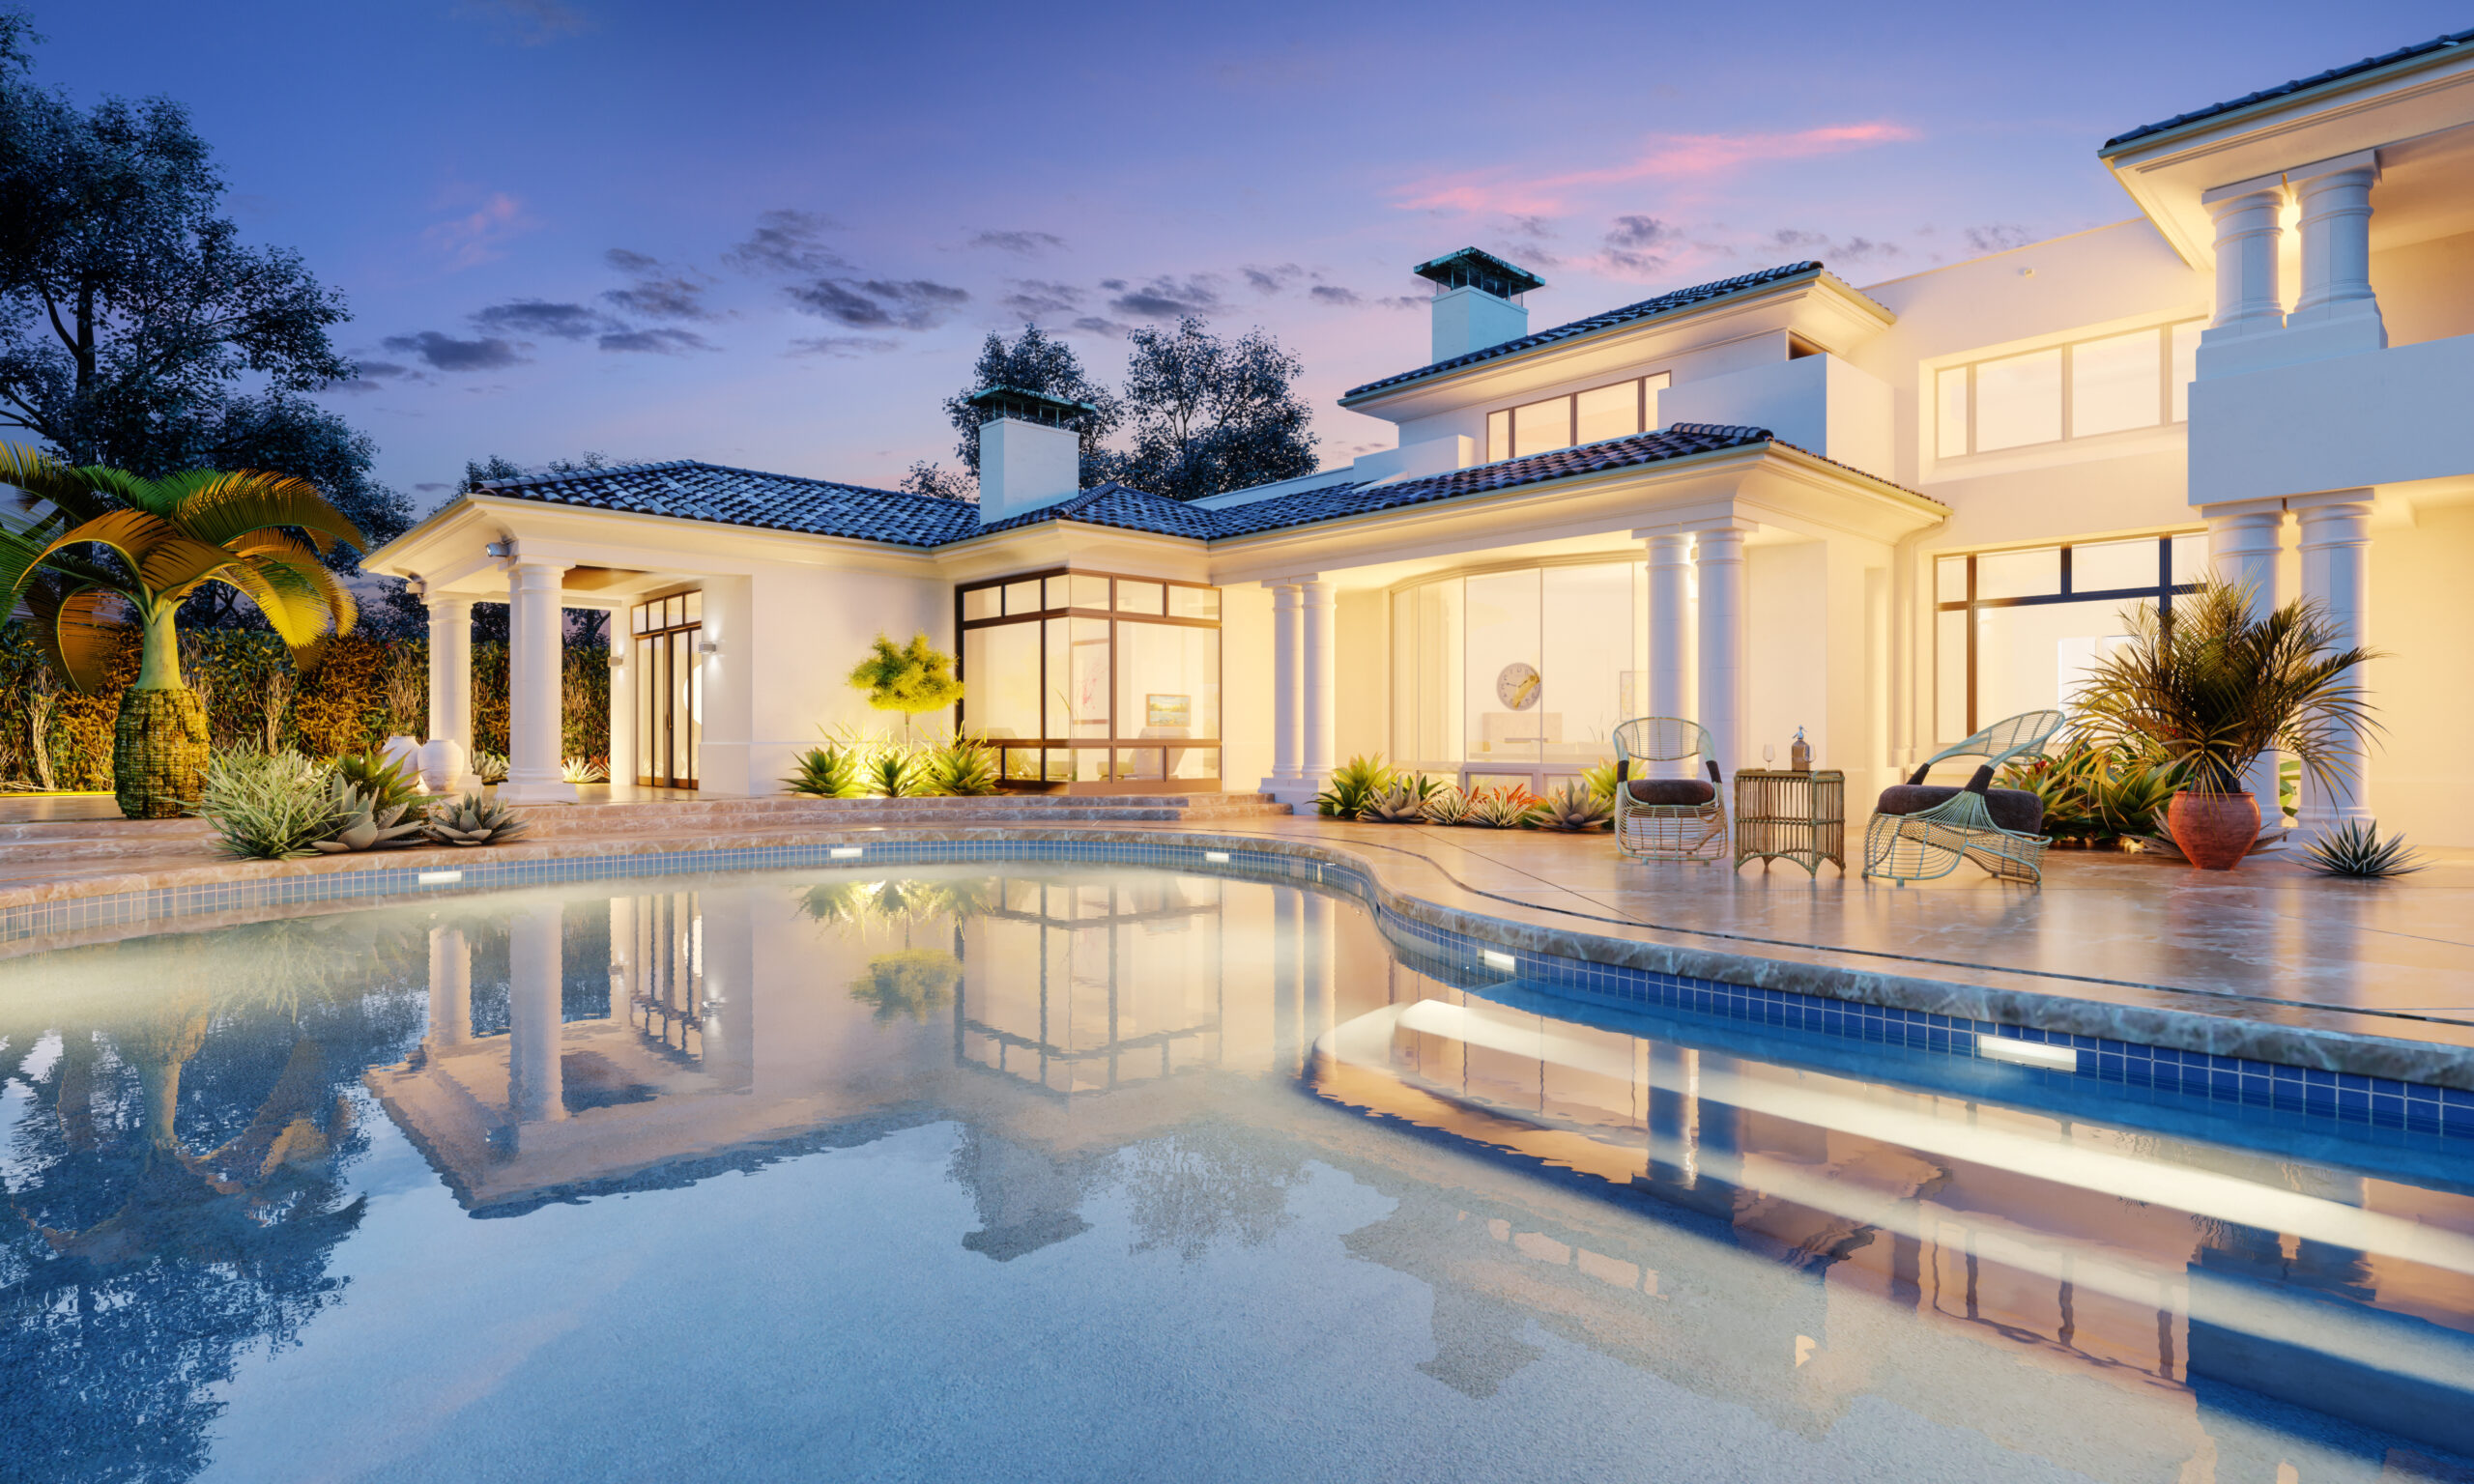 Expensive private villa. Swimming pool in a private house. Evening in a country house. Mansion exterior. Luxury villa with swimming pool.